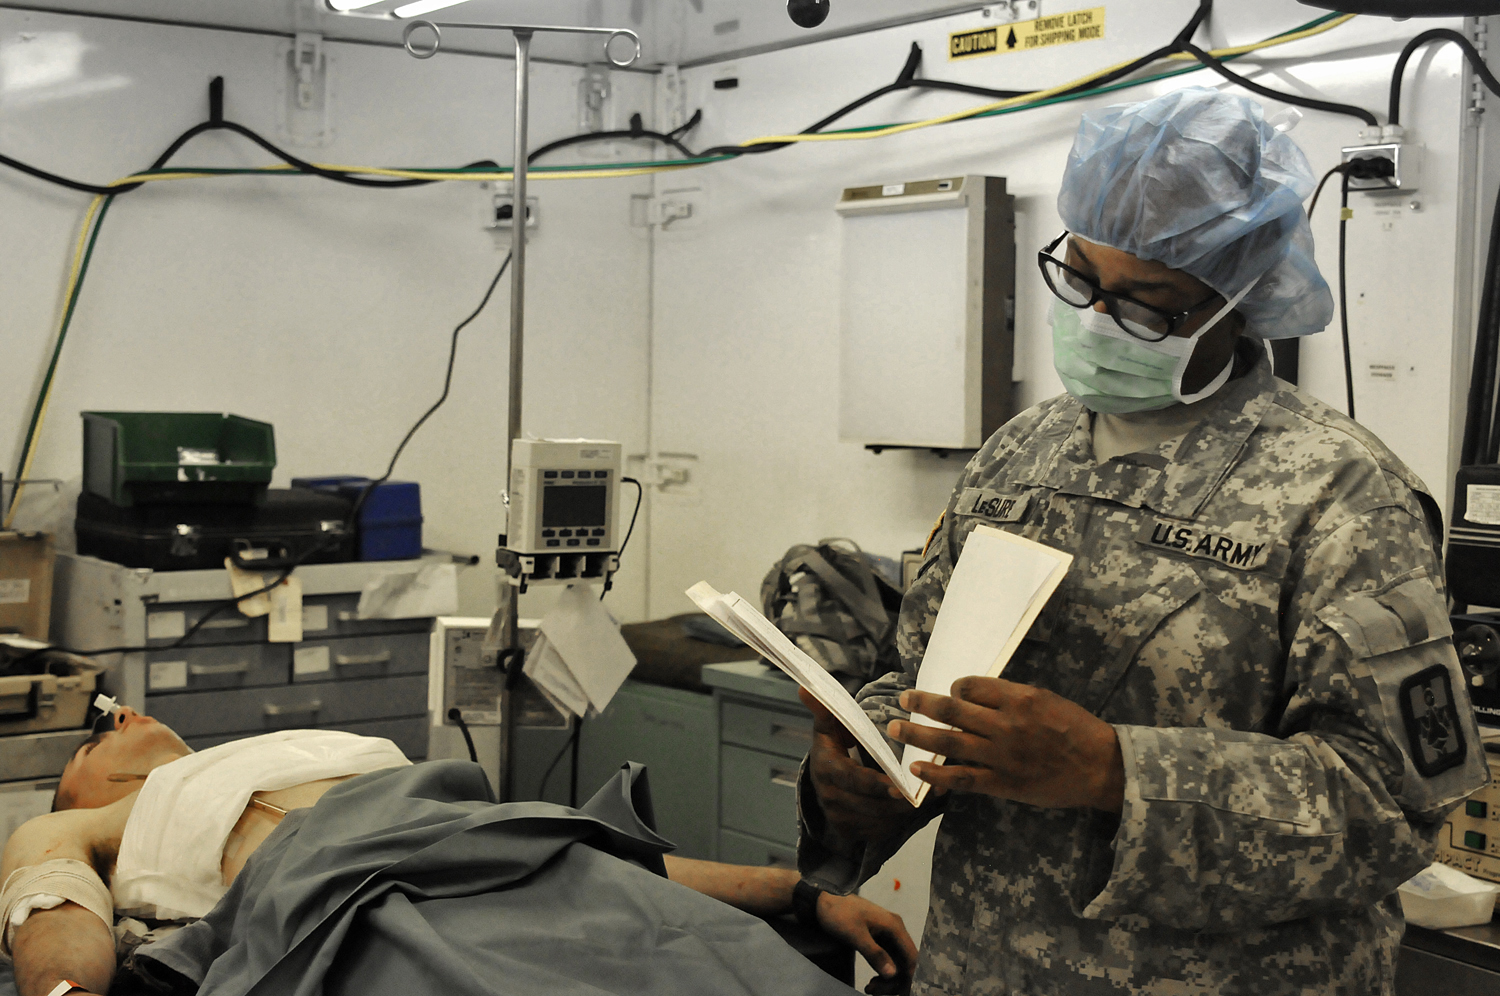 Lt. Col. Anita Lesure, a Soldier with the 801st CSH and head nurse of the operating room, examines a patient's chart to decide further treatment during a MASCAL exercise simulating a helicopter crash with 32 casualties at Fort Hunter Liggett, California in May 2016. Medics gave battlefield aid and evacuated the casualties to the CSH. (U.S. Army photo by Sgt. Kimberly Browne, 350th Public Affairs Detachment)